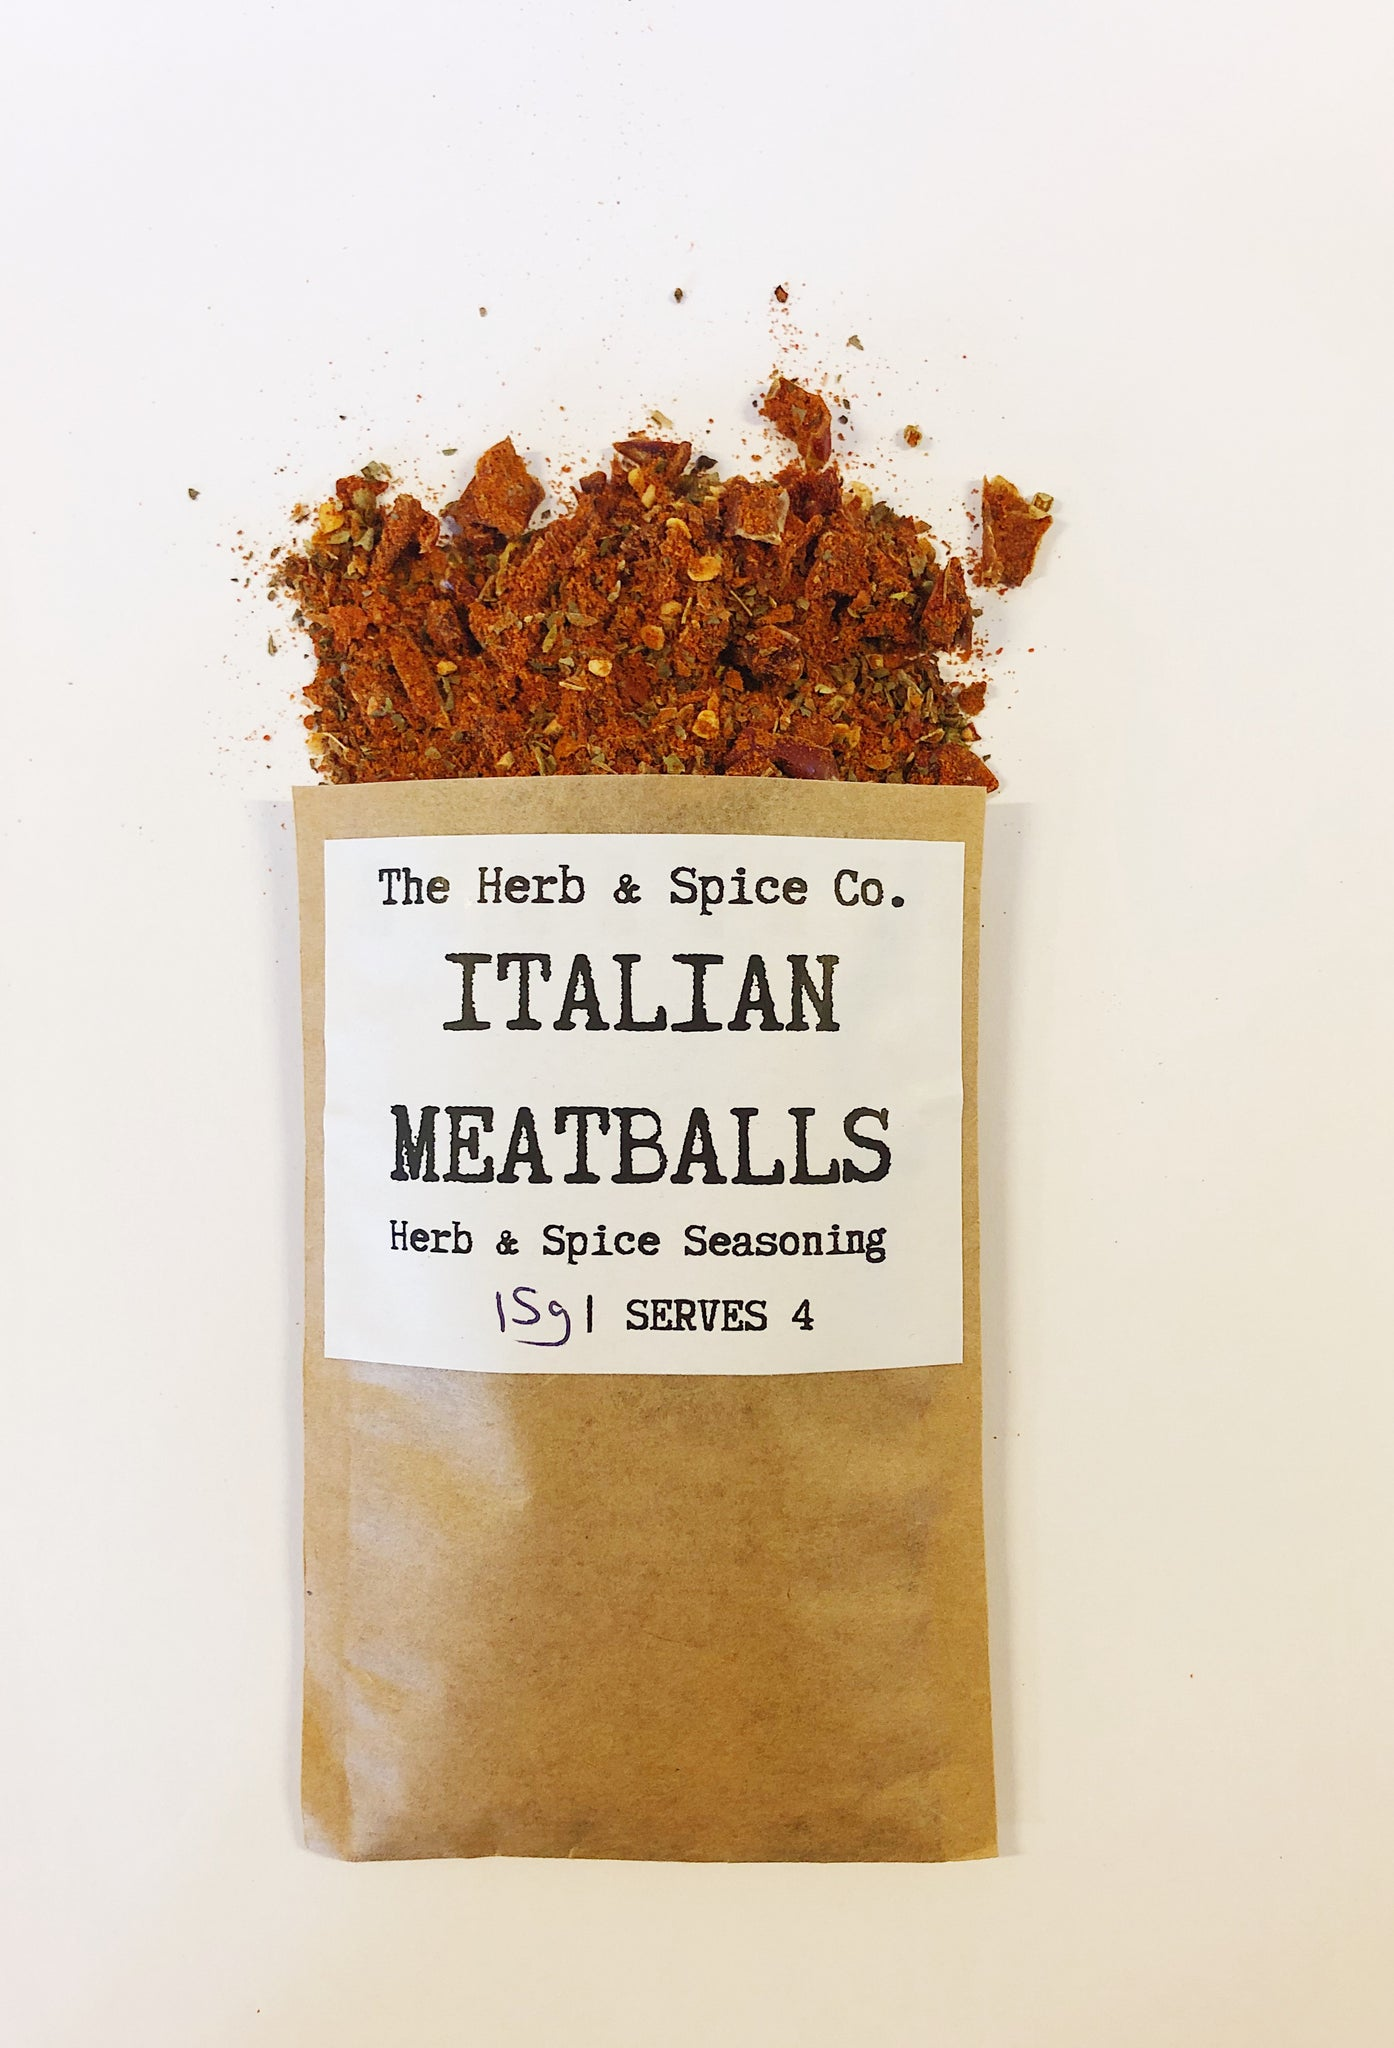 Italian Meatballs The Herb & Spice Co. Seasoning Blend Herbs Spices Recipe MixItalian Meatballs The Herb & Spice Co. Seasoning Blend Herbs Spices Recipe Mix